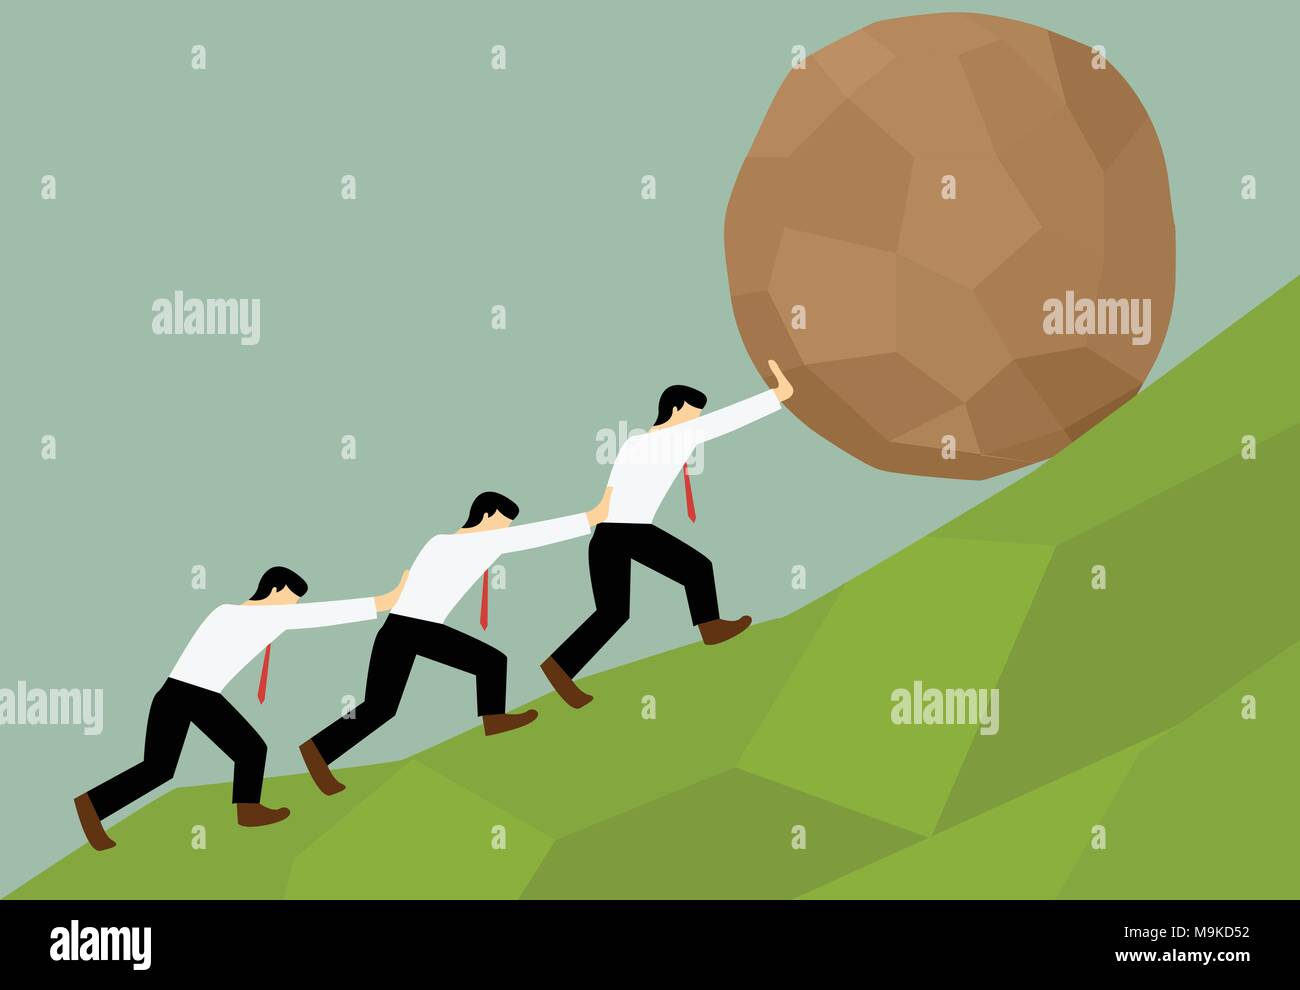 Group of Man try to move stone ball to top of hill, Teamwork concept - Stock Vector